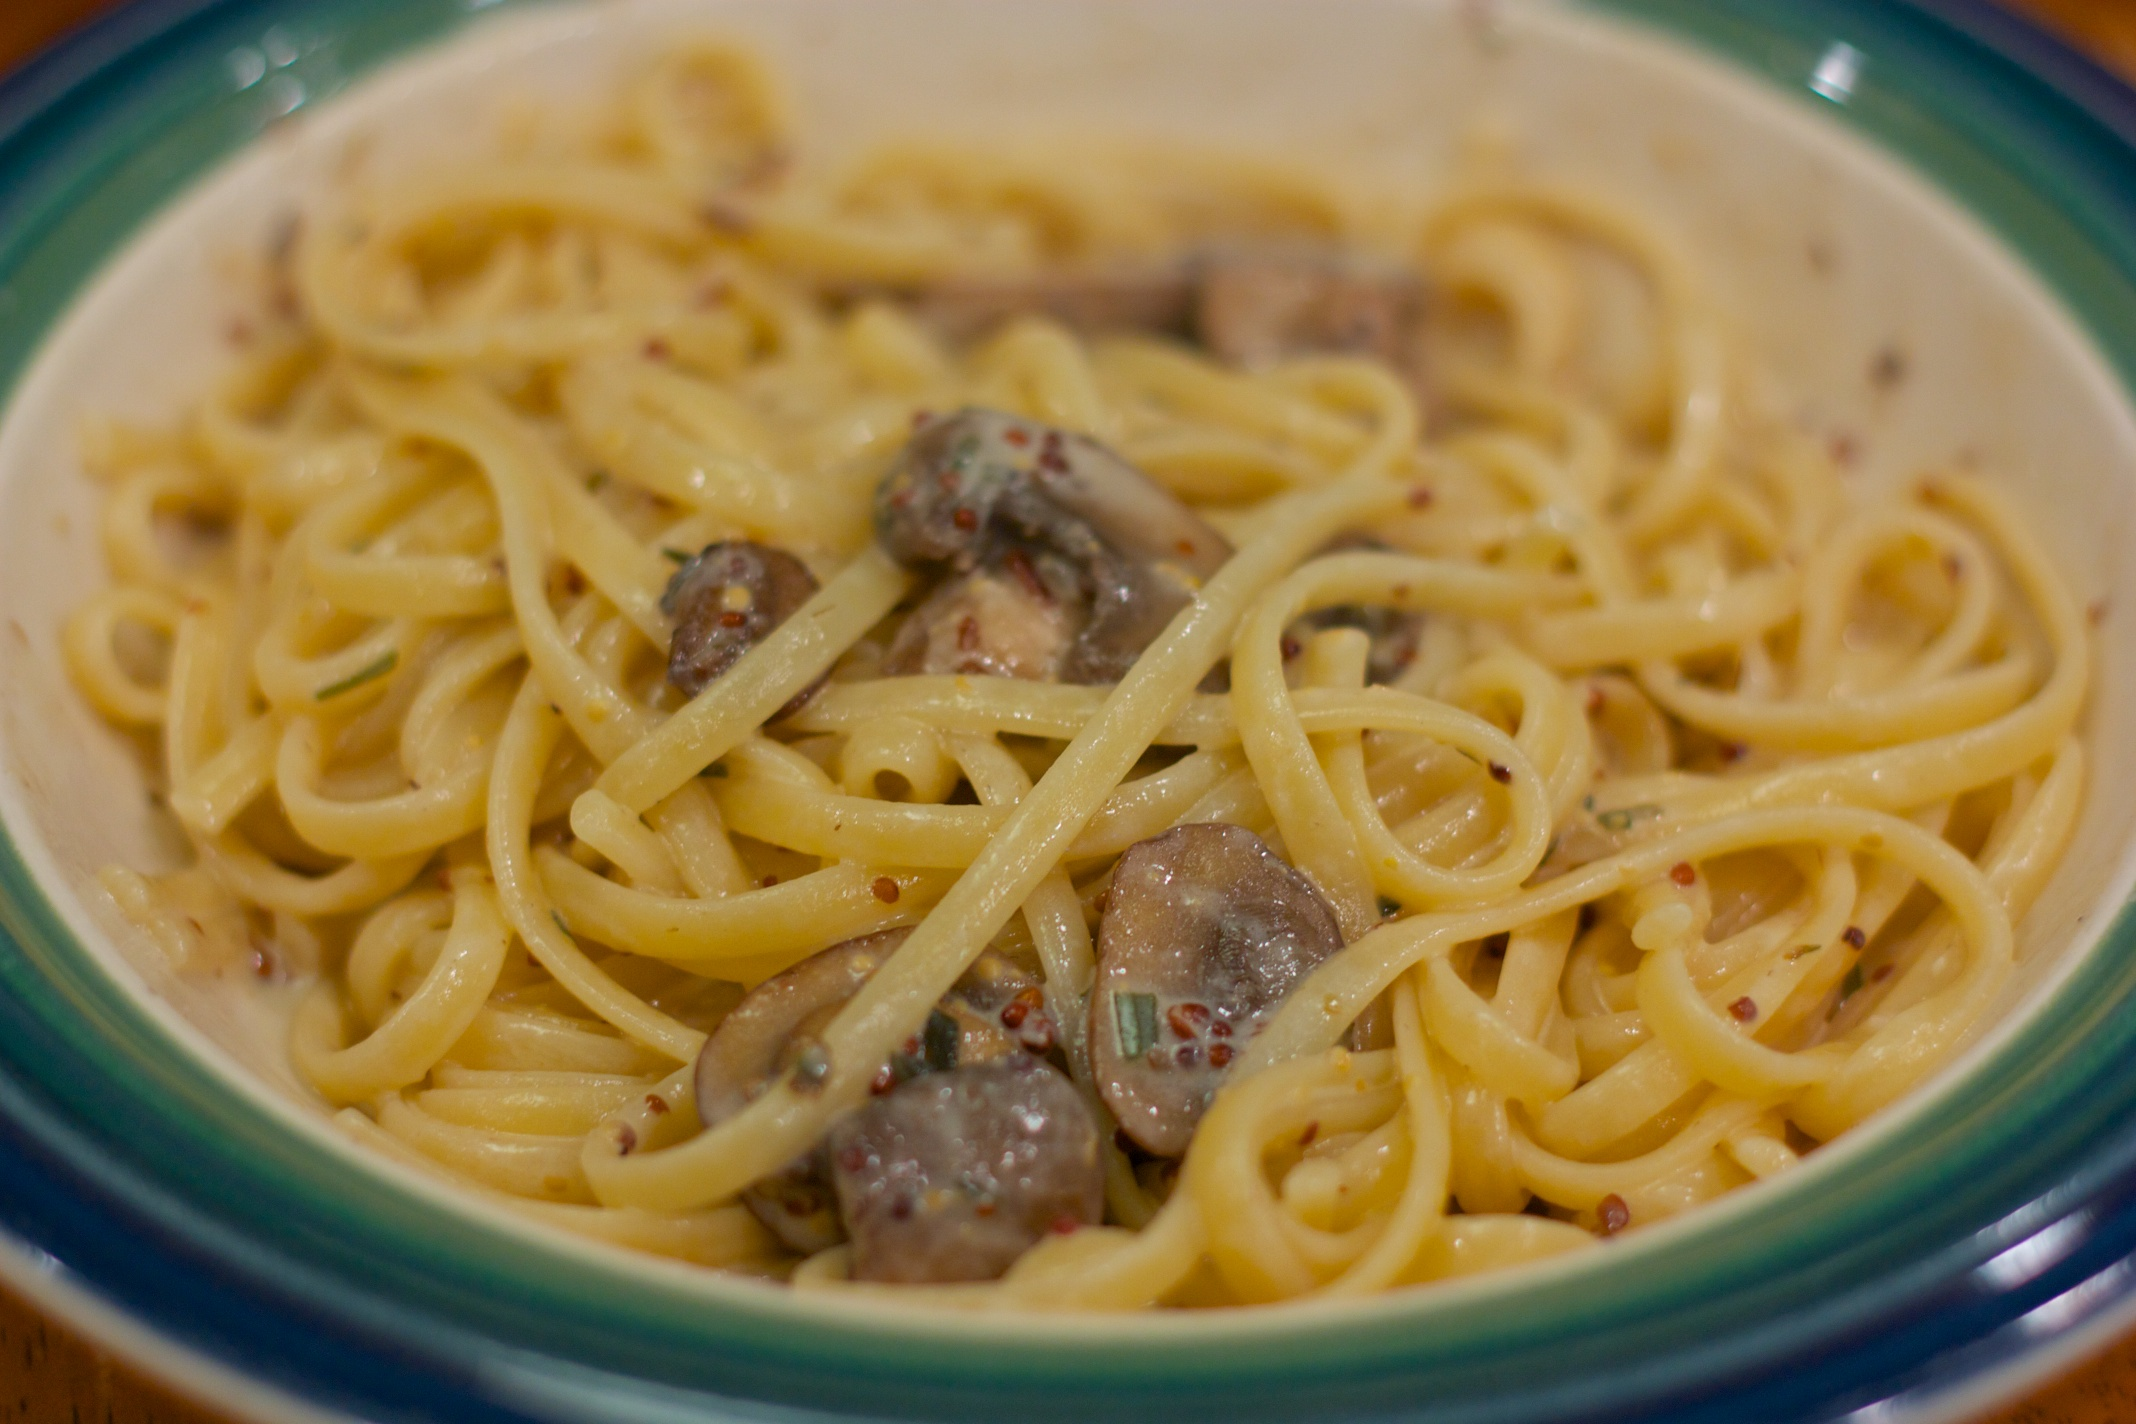 Tuesday Dinner: Pasta With Mushrooms in a Mustard Cream Sauce